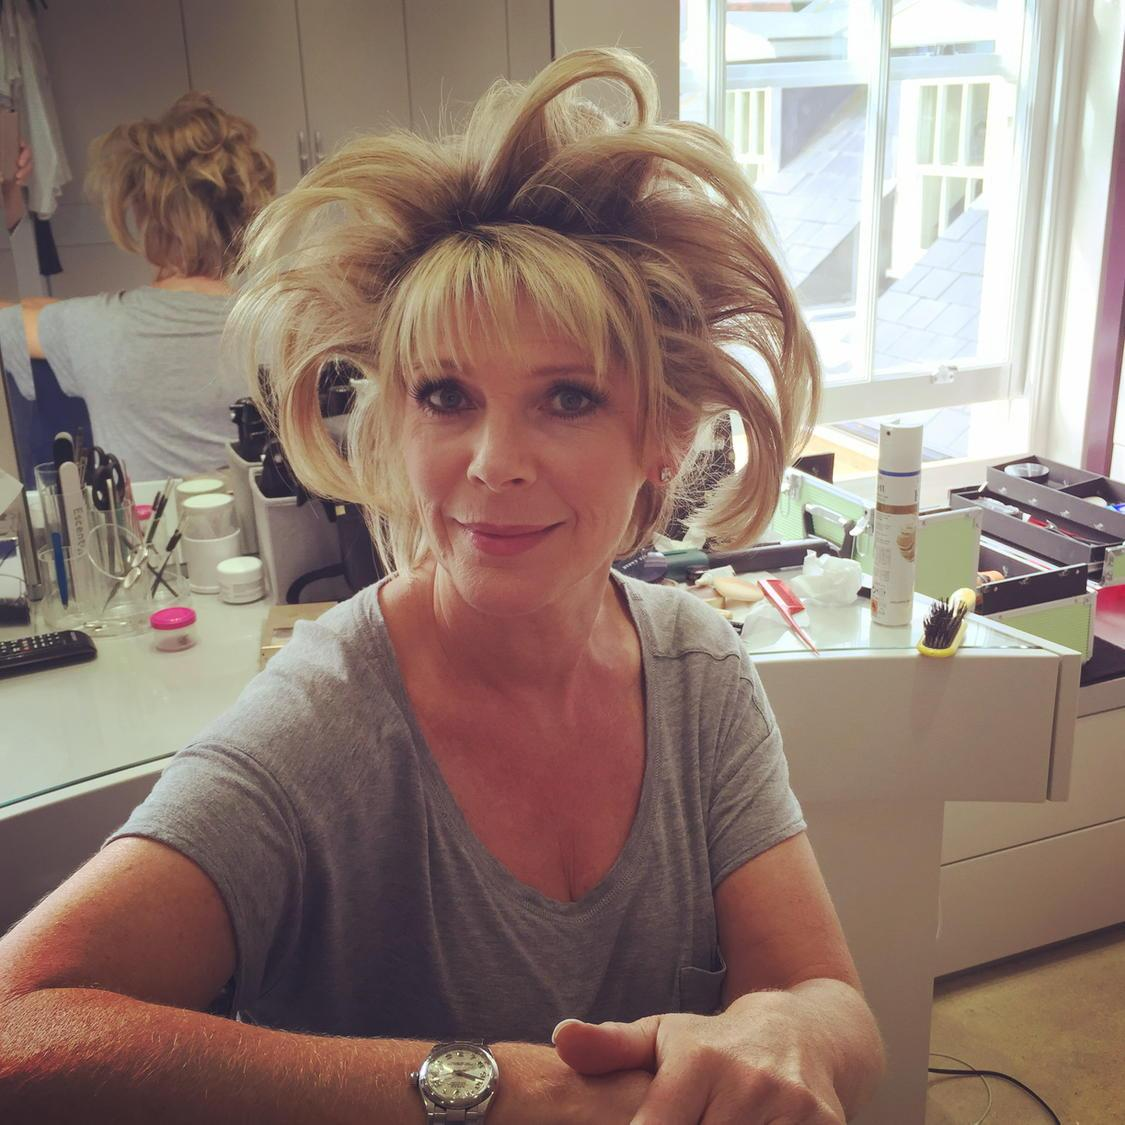 """Ruth Langsford Photos: Patricia Smith On Twitter: """"@RuthieeL @leobancroft You"""